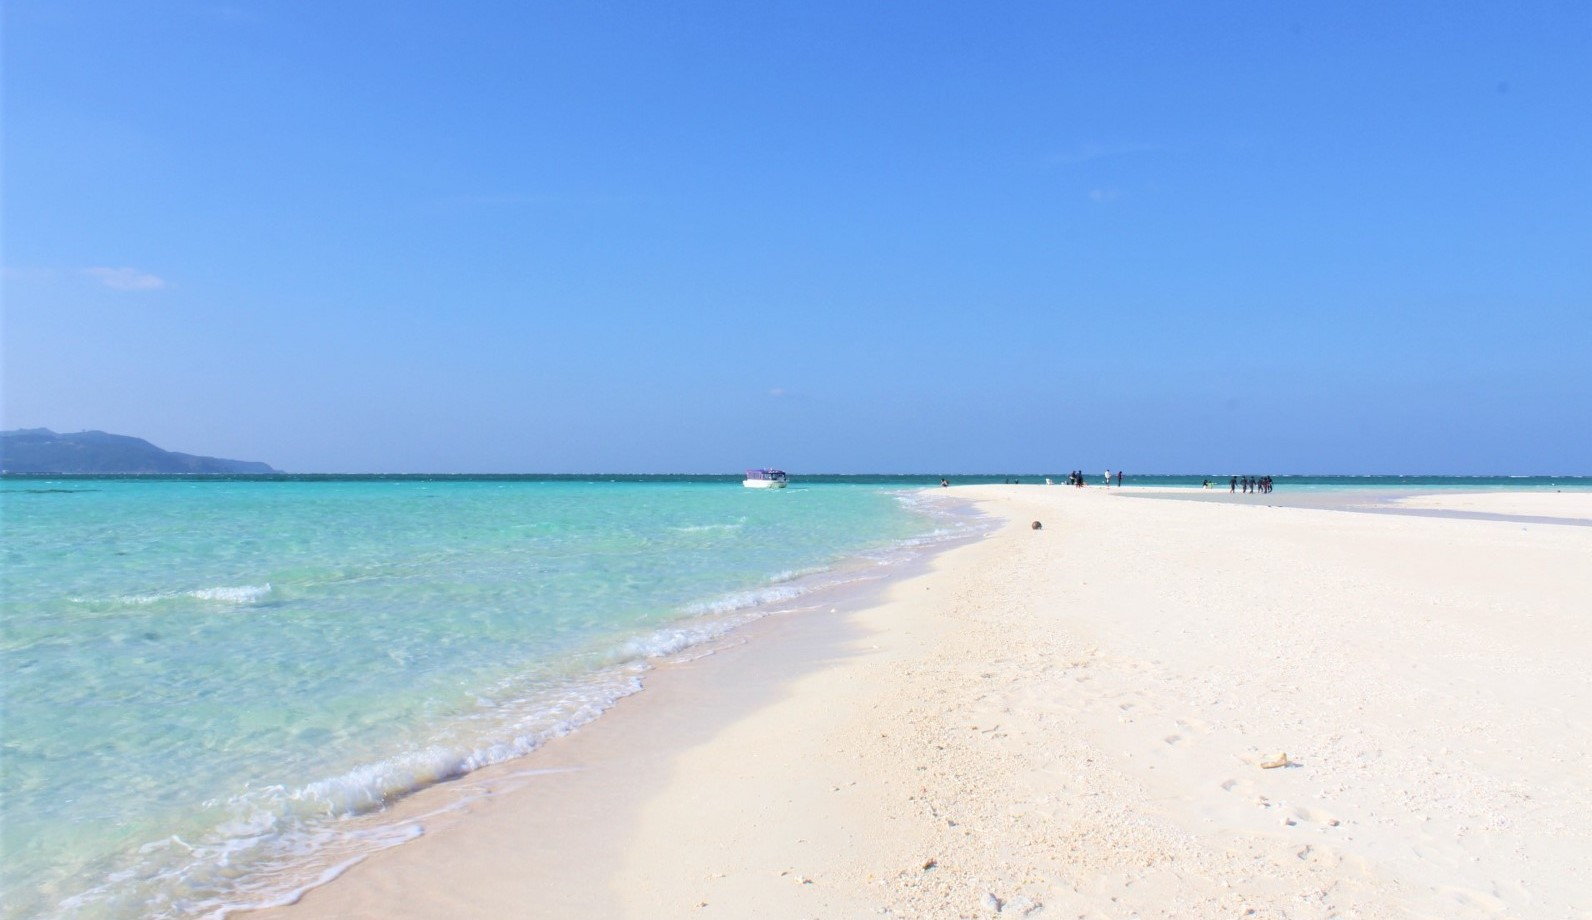 The beach on Kume island with pure white sand with clear blue water